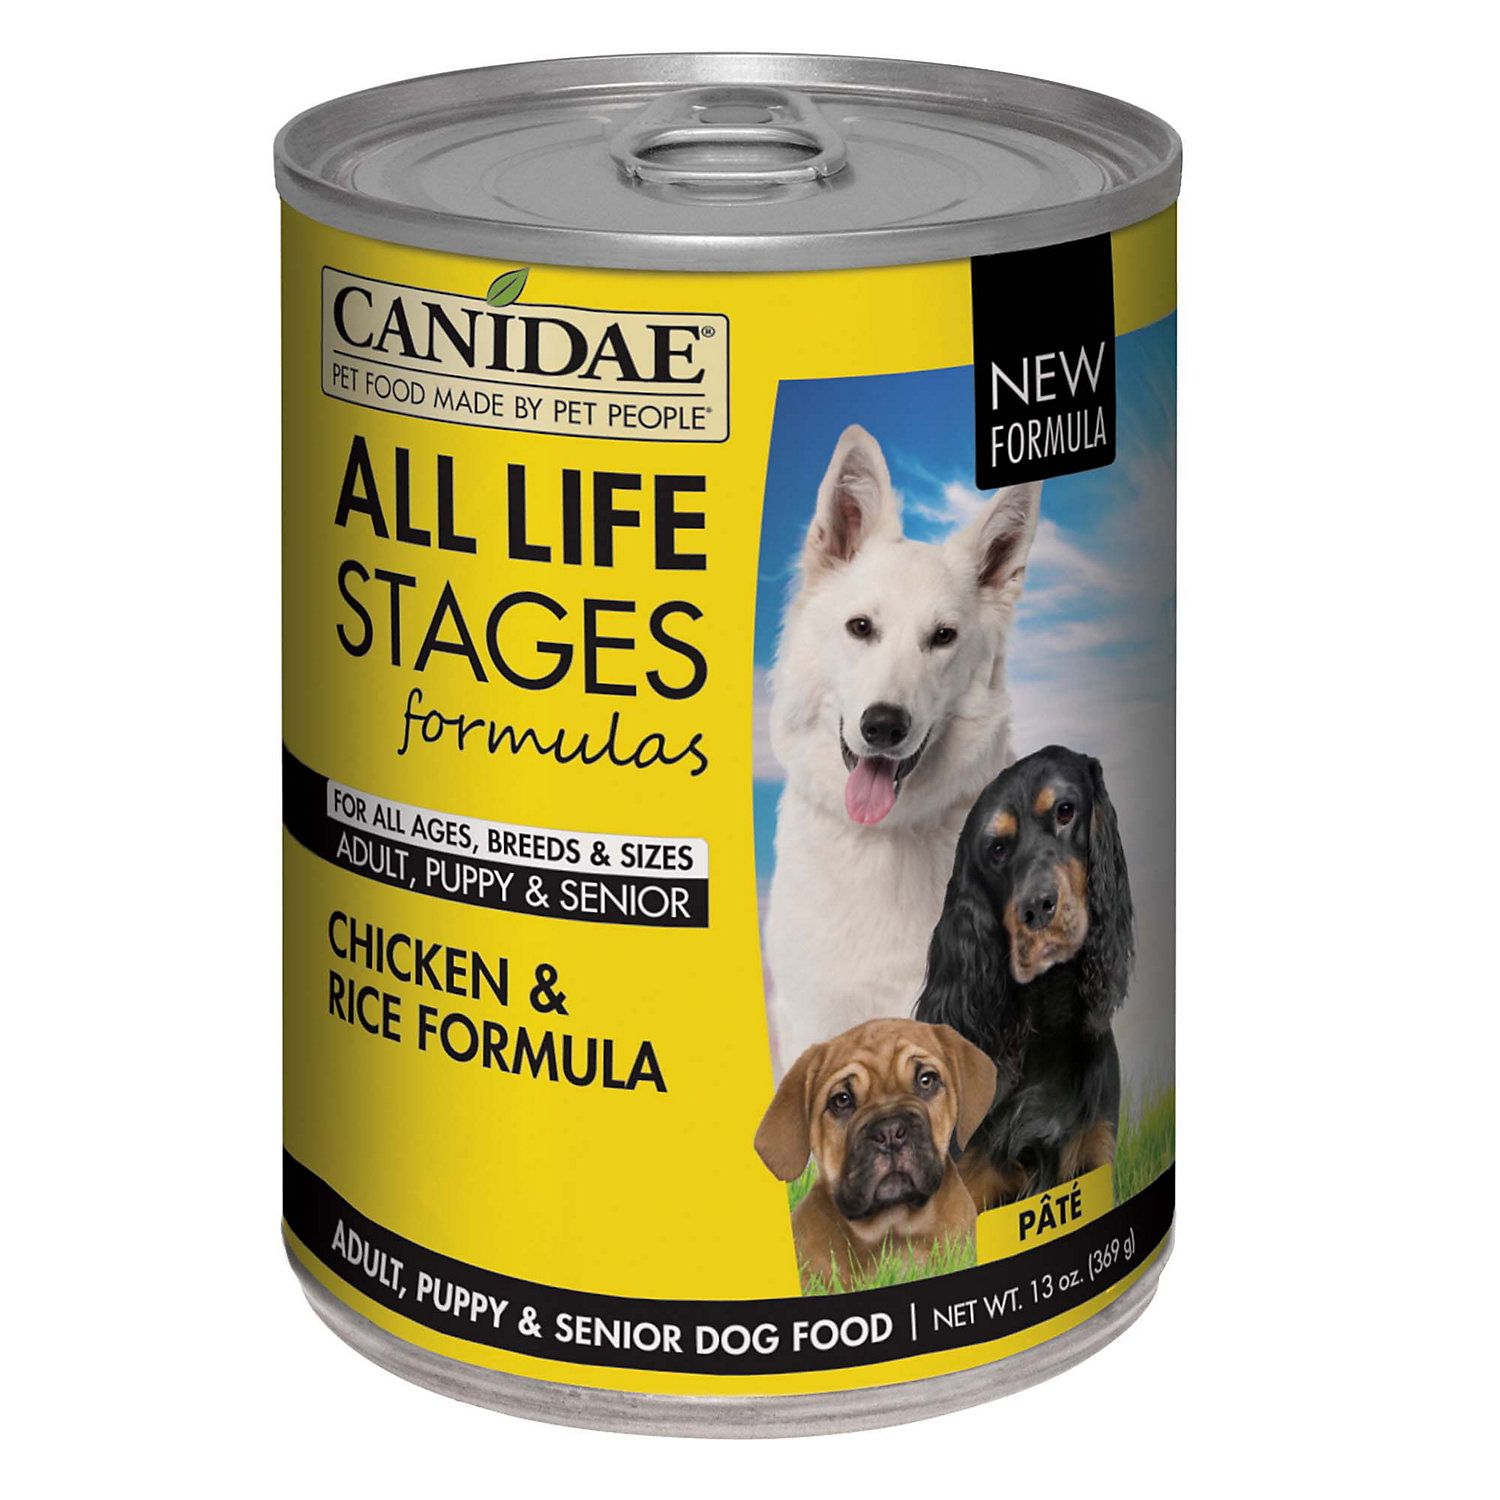 CANIDAE All Life Stages Chicken & Rice Wet Dog Food, 13 oz